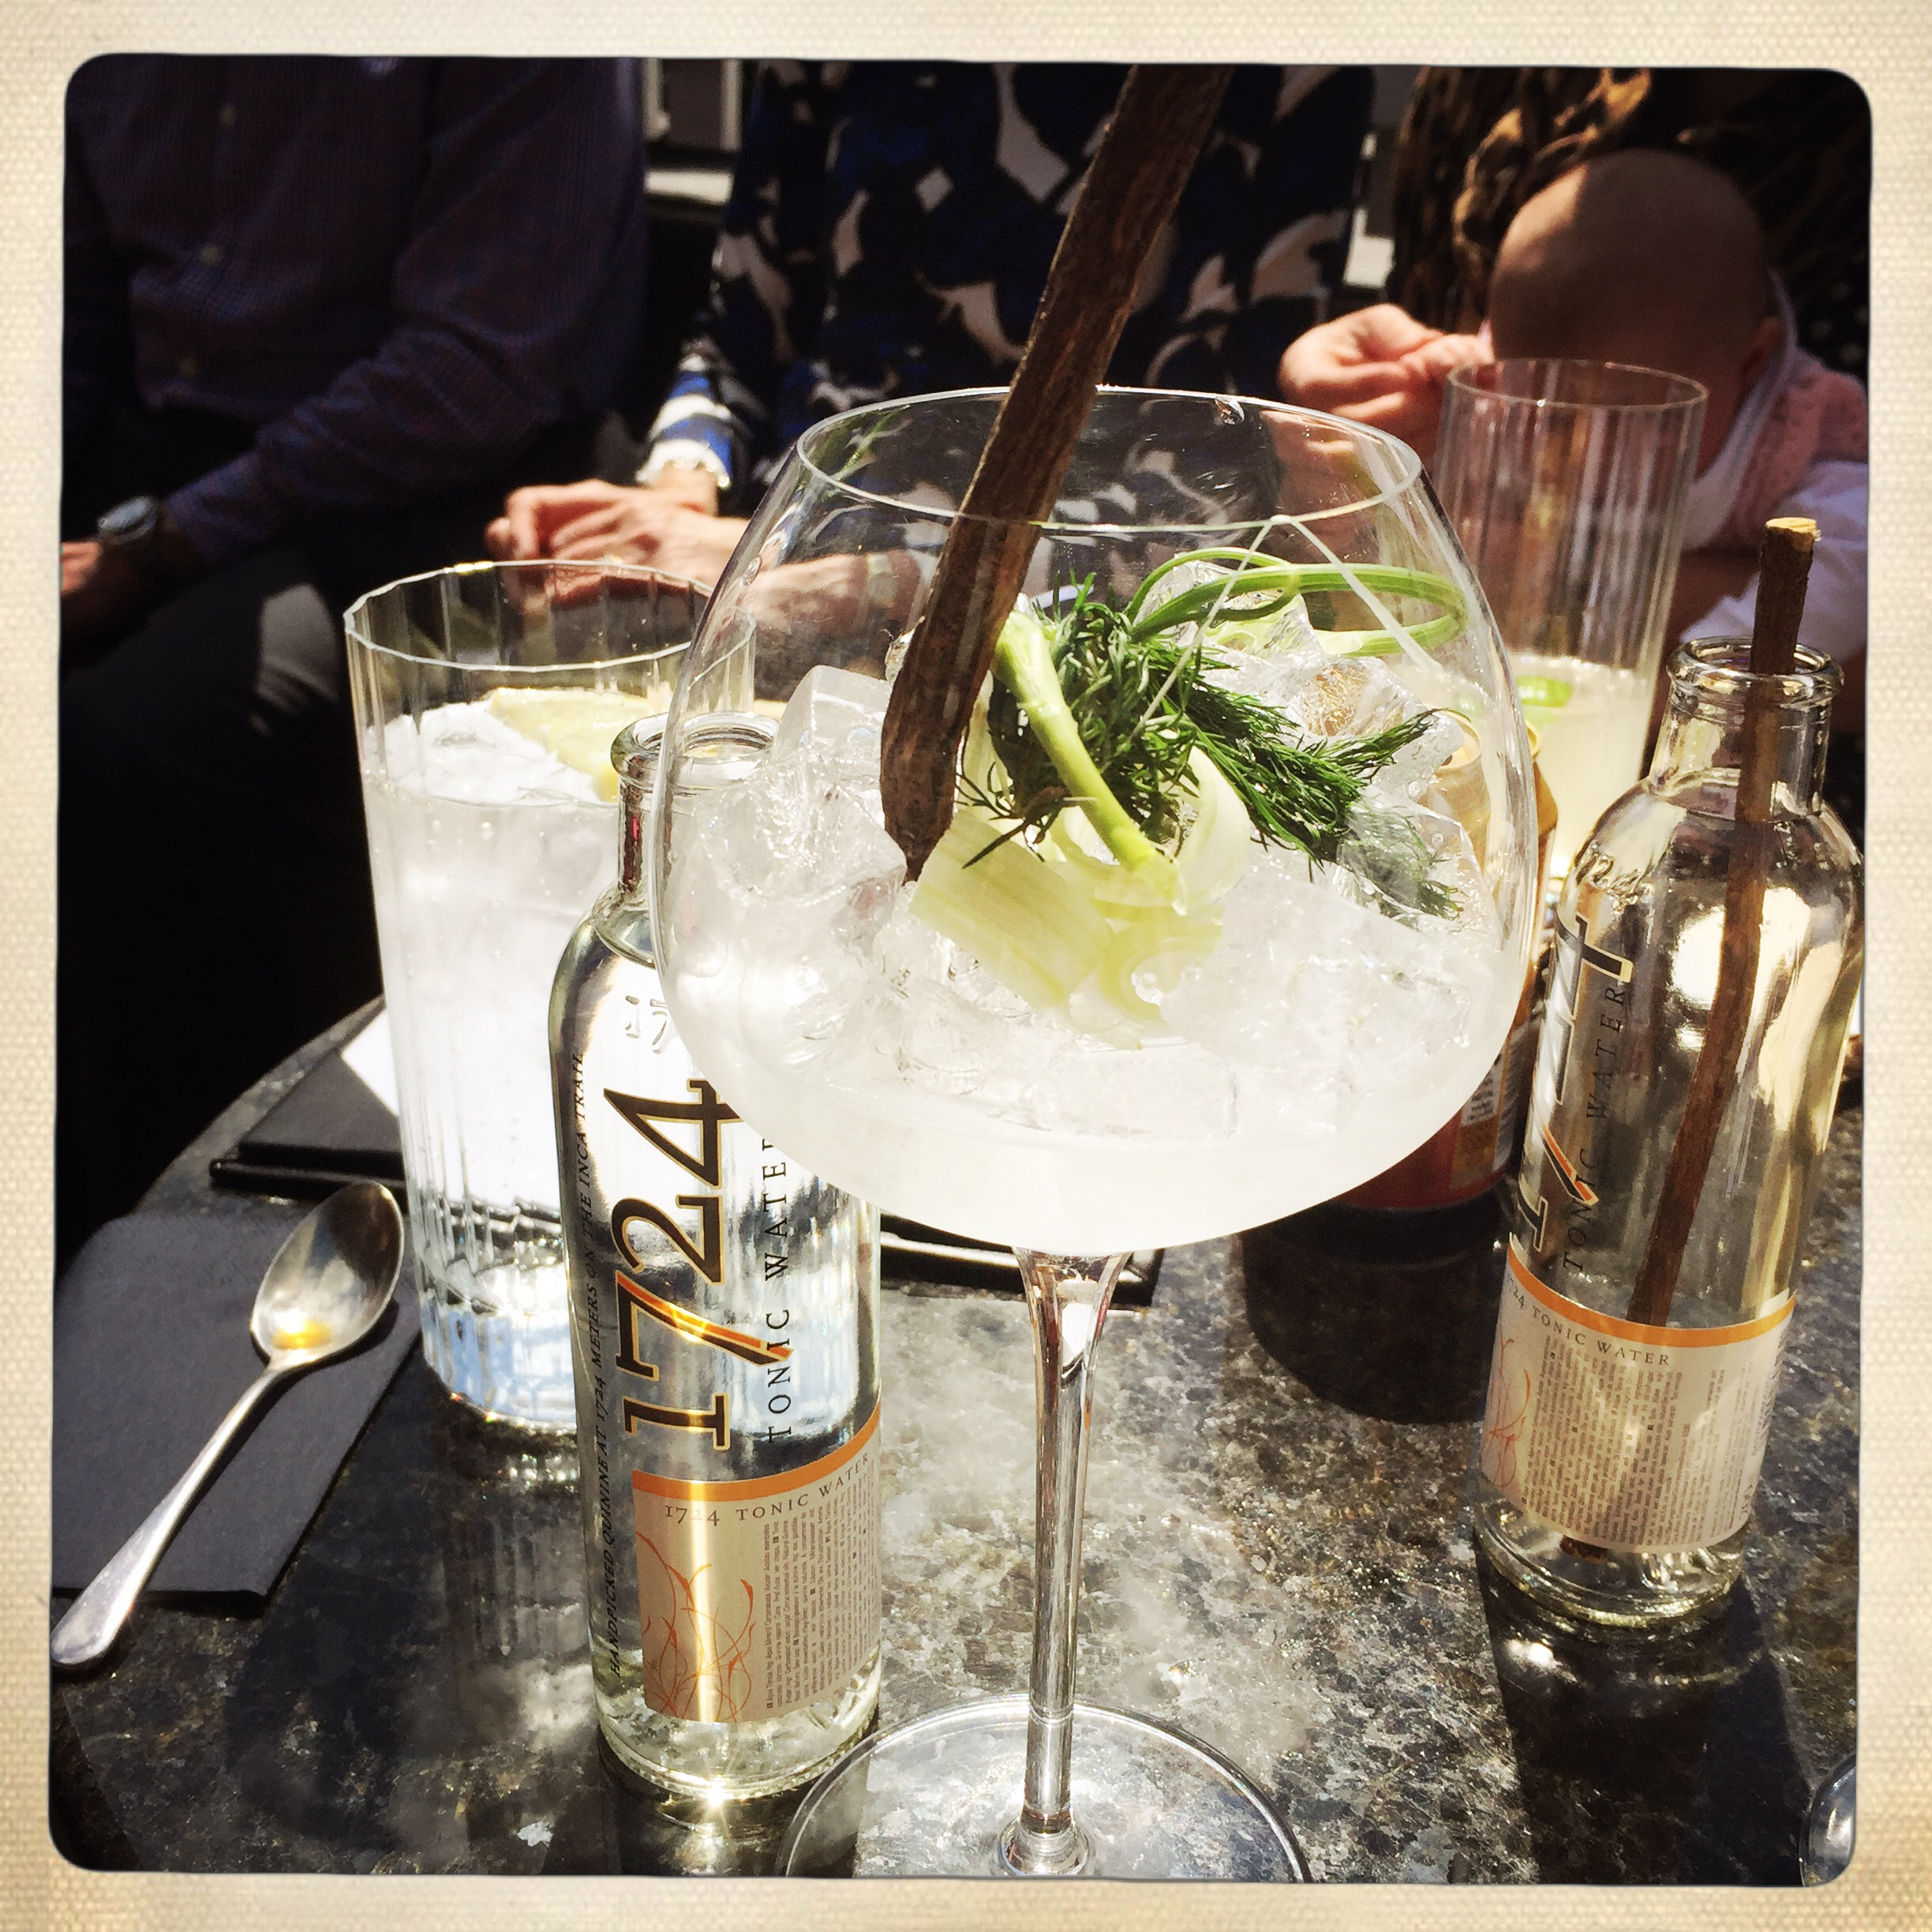 Tom's vegetable gin with celery and dill